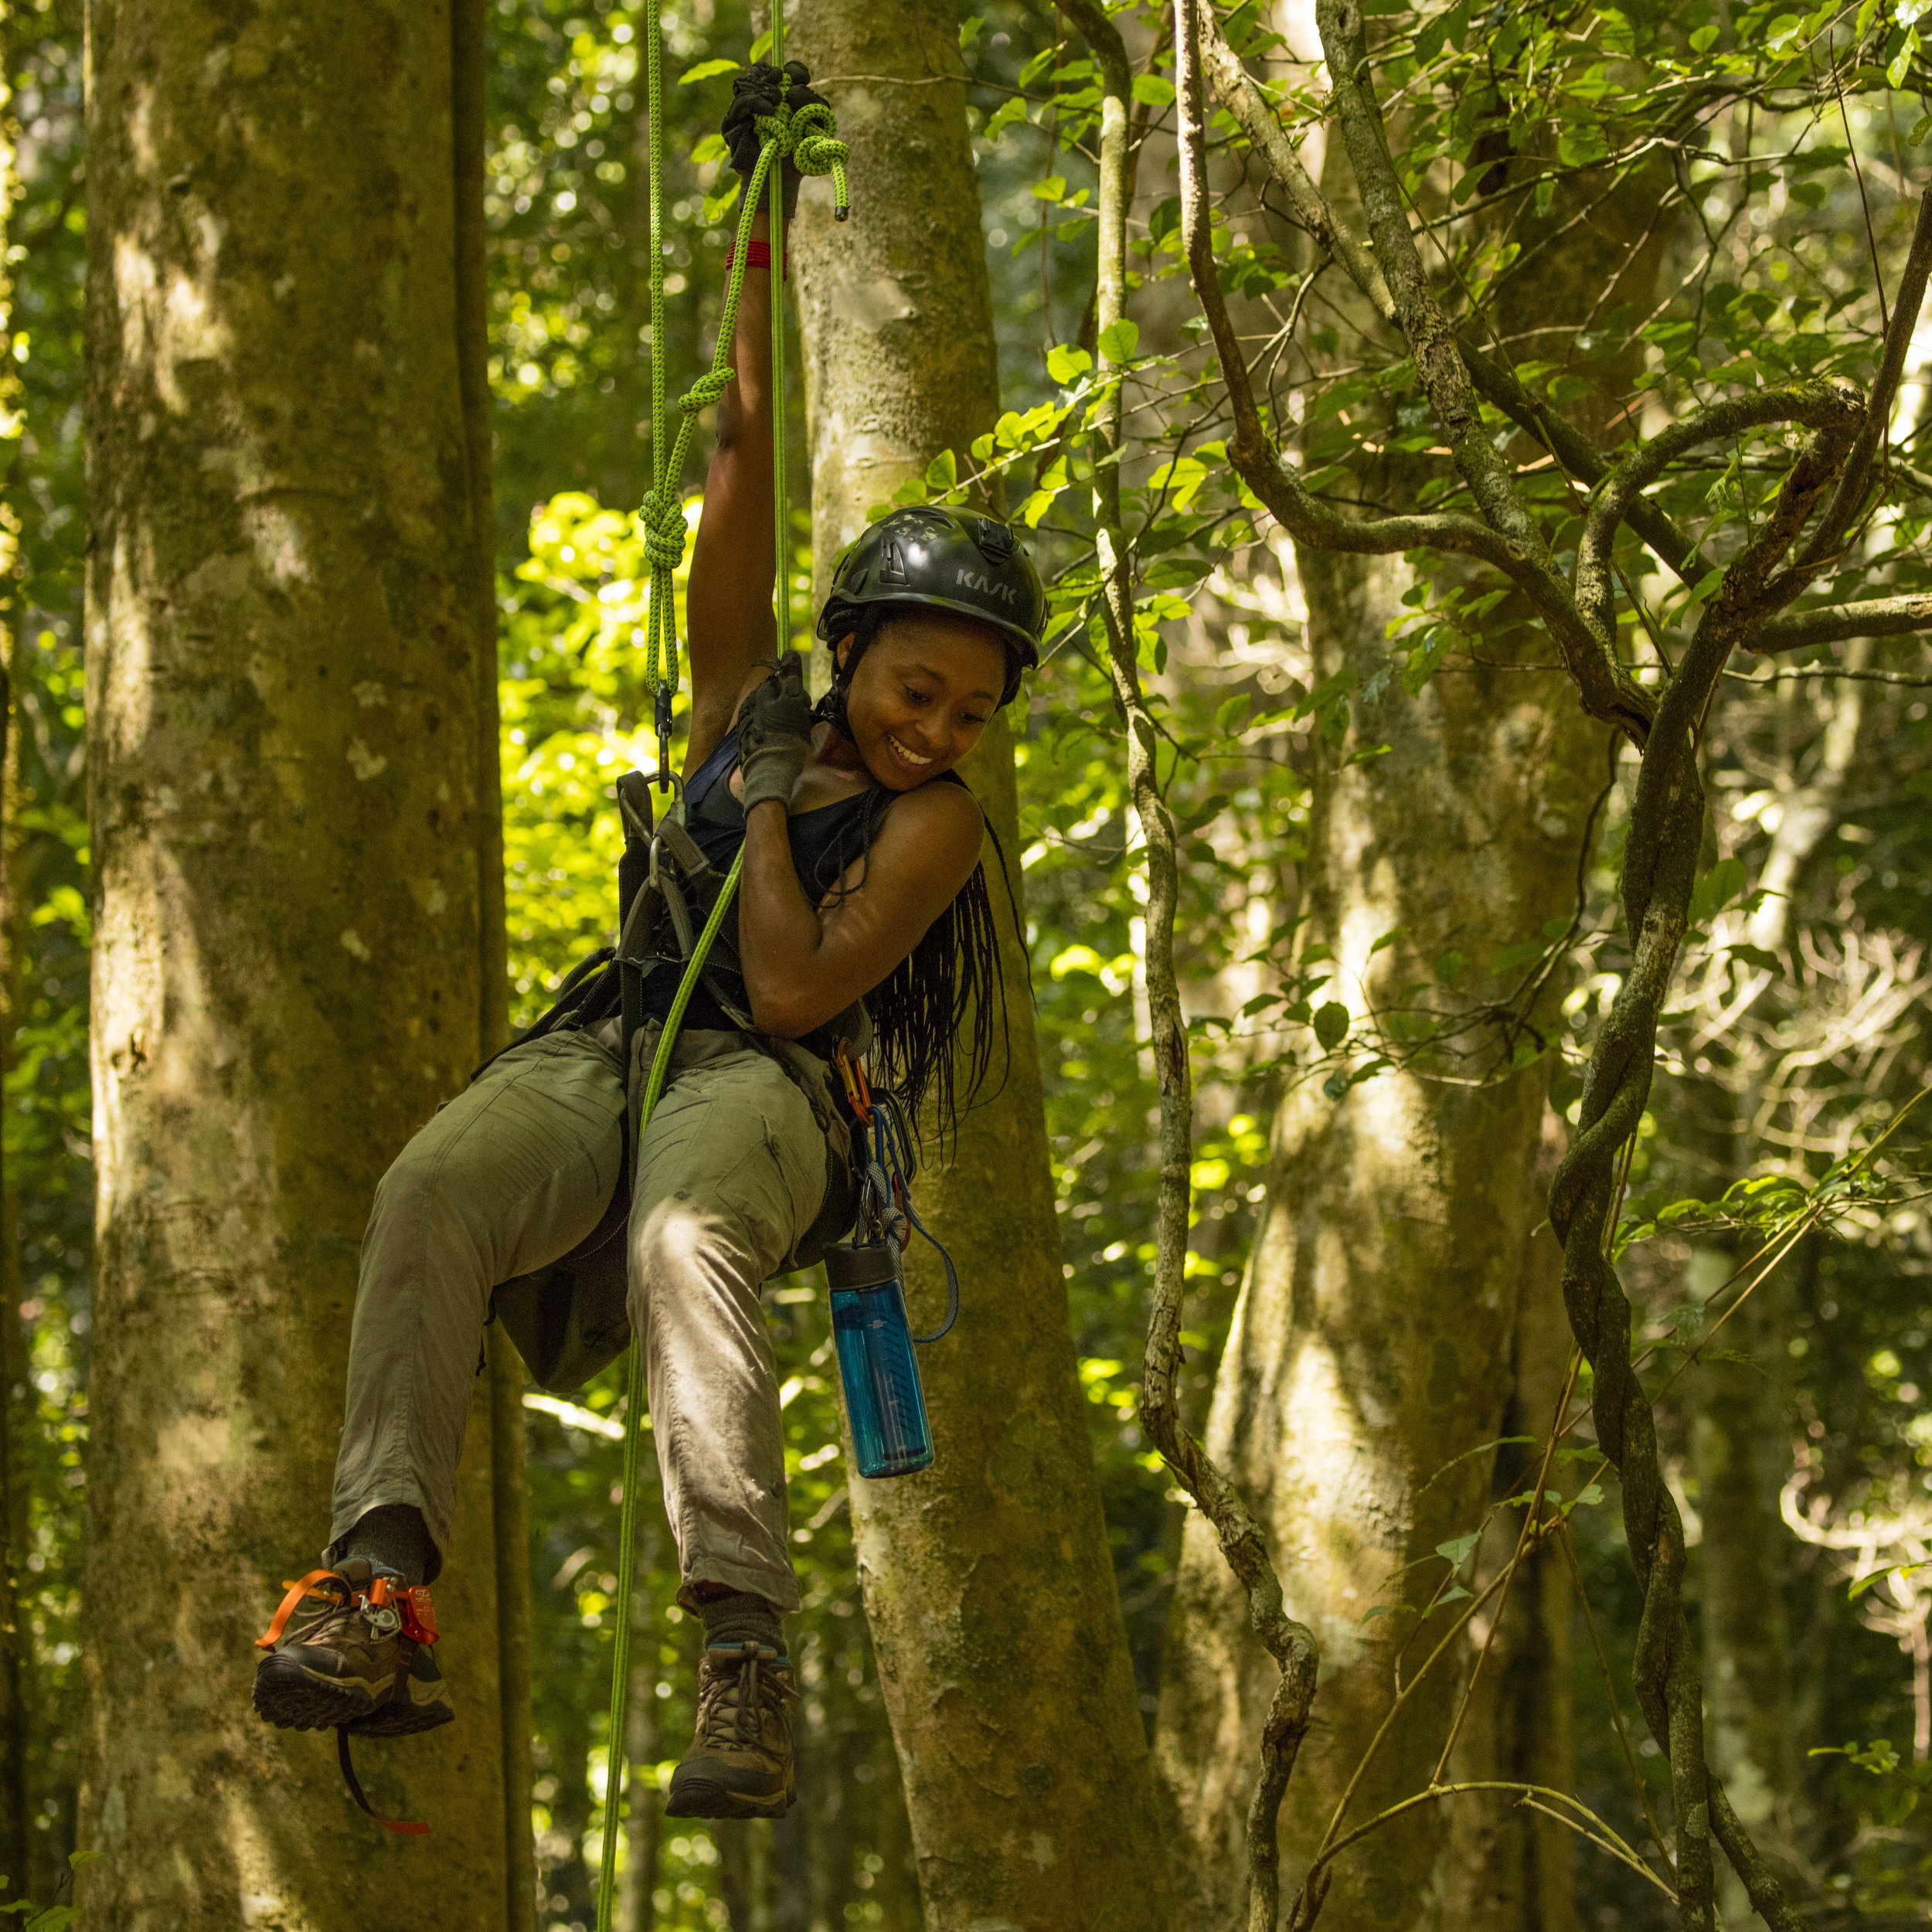 Climbing into the rainforest canopy in Madagascar